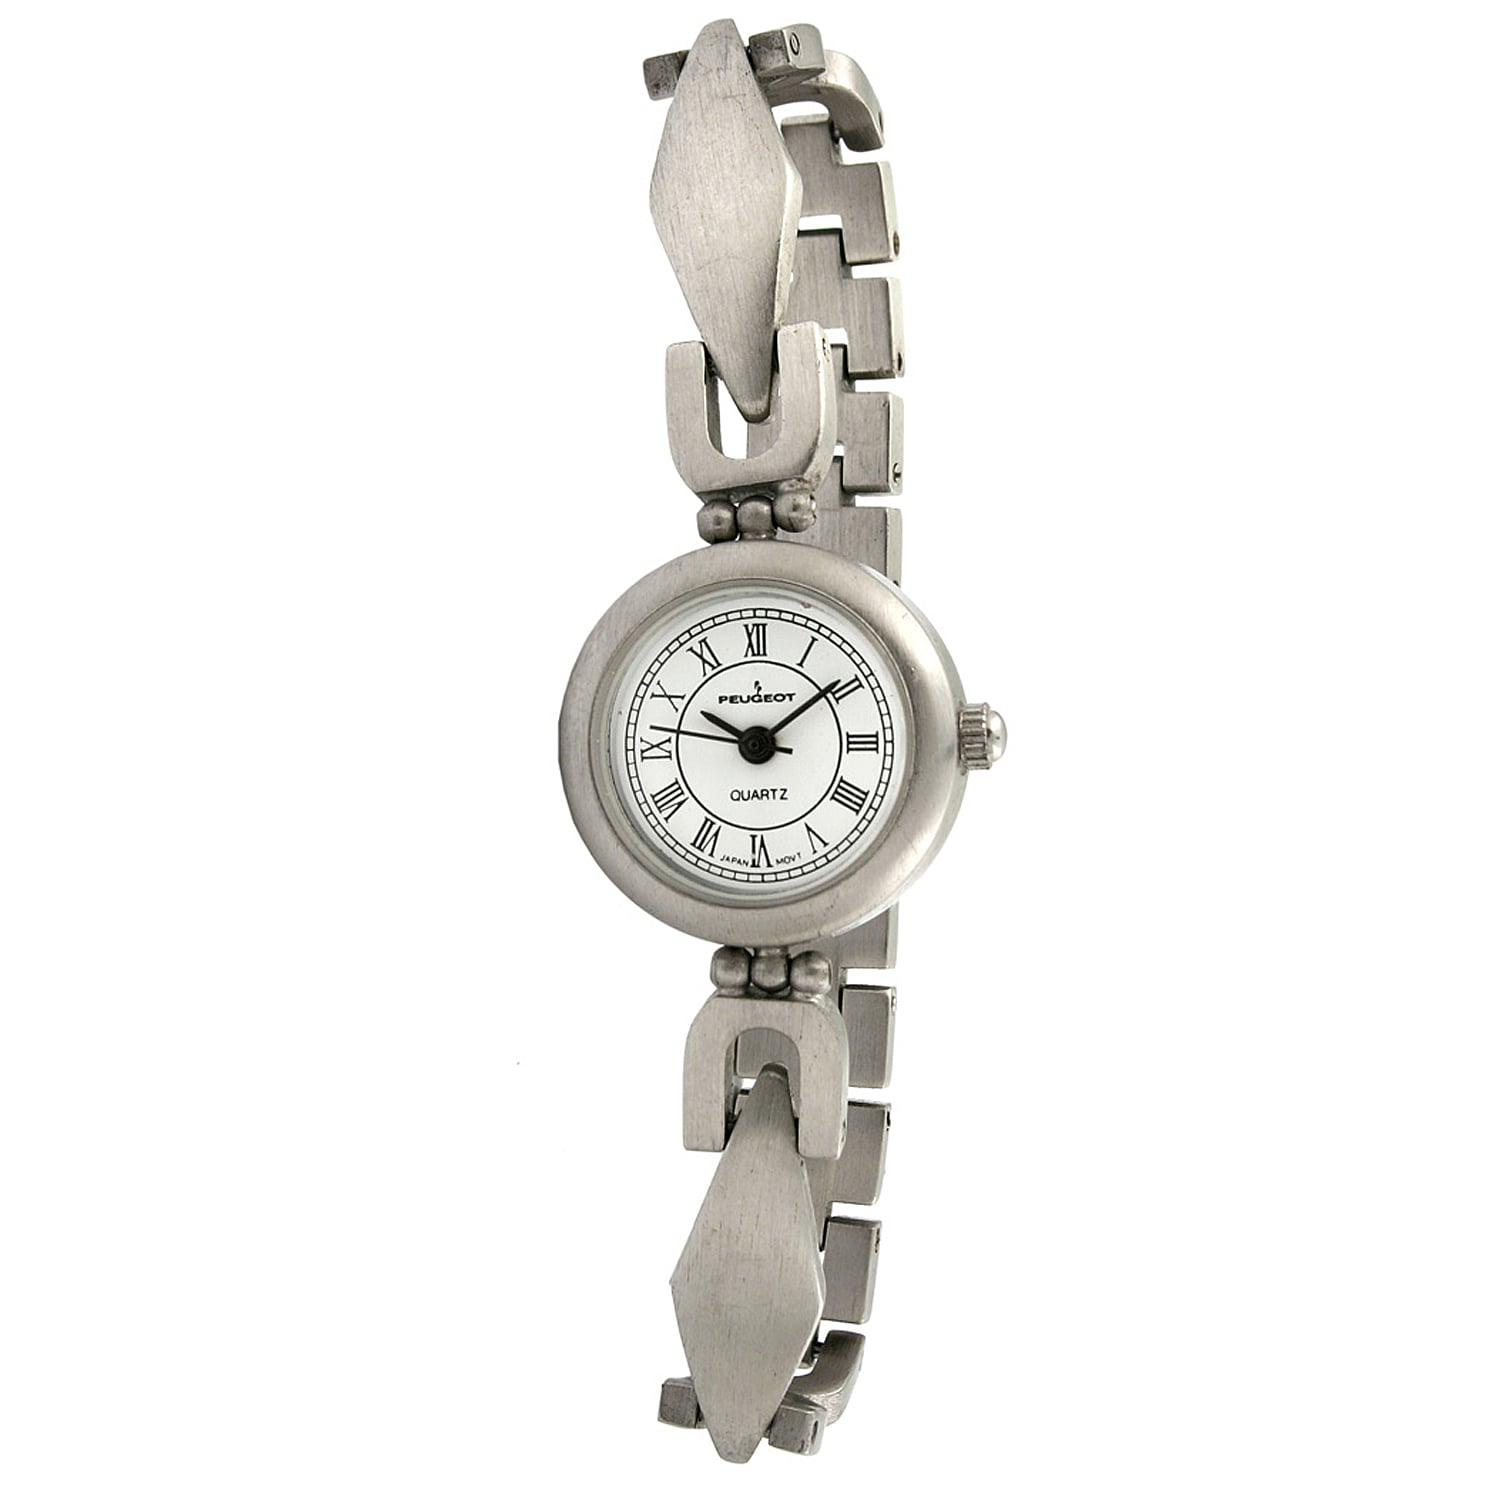 Peugeot Women's Vintage Brushed Metal Watch